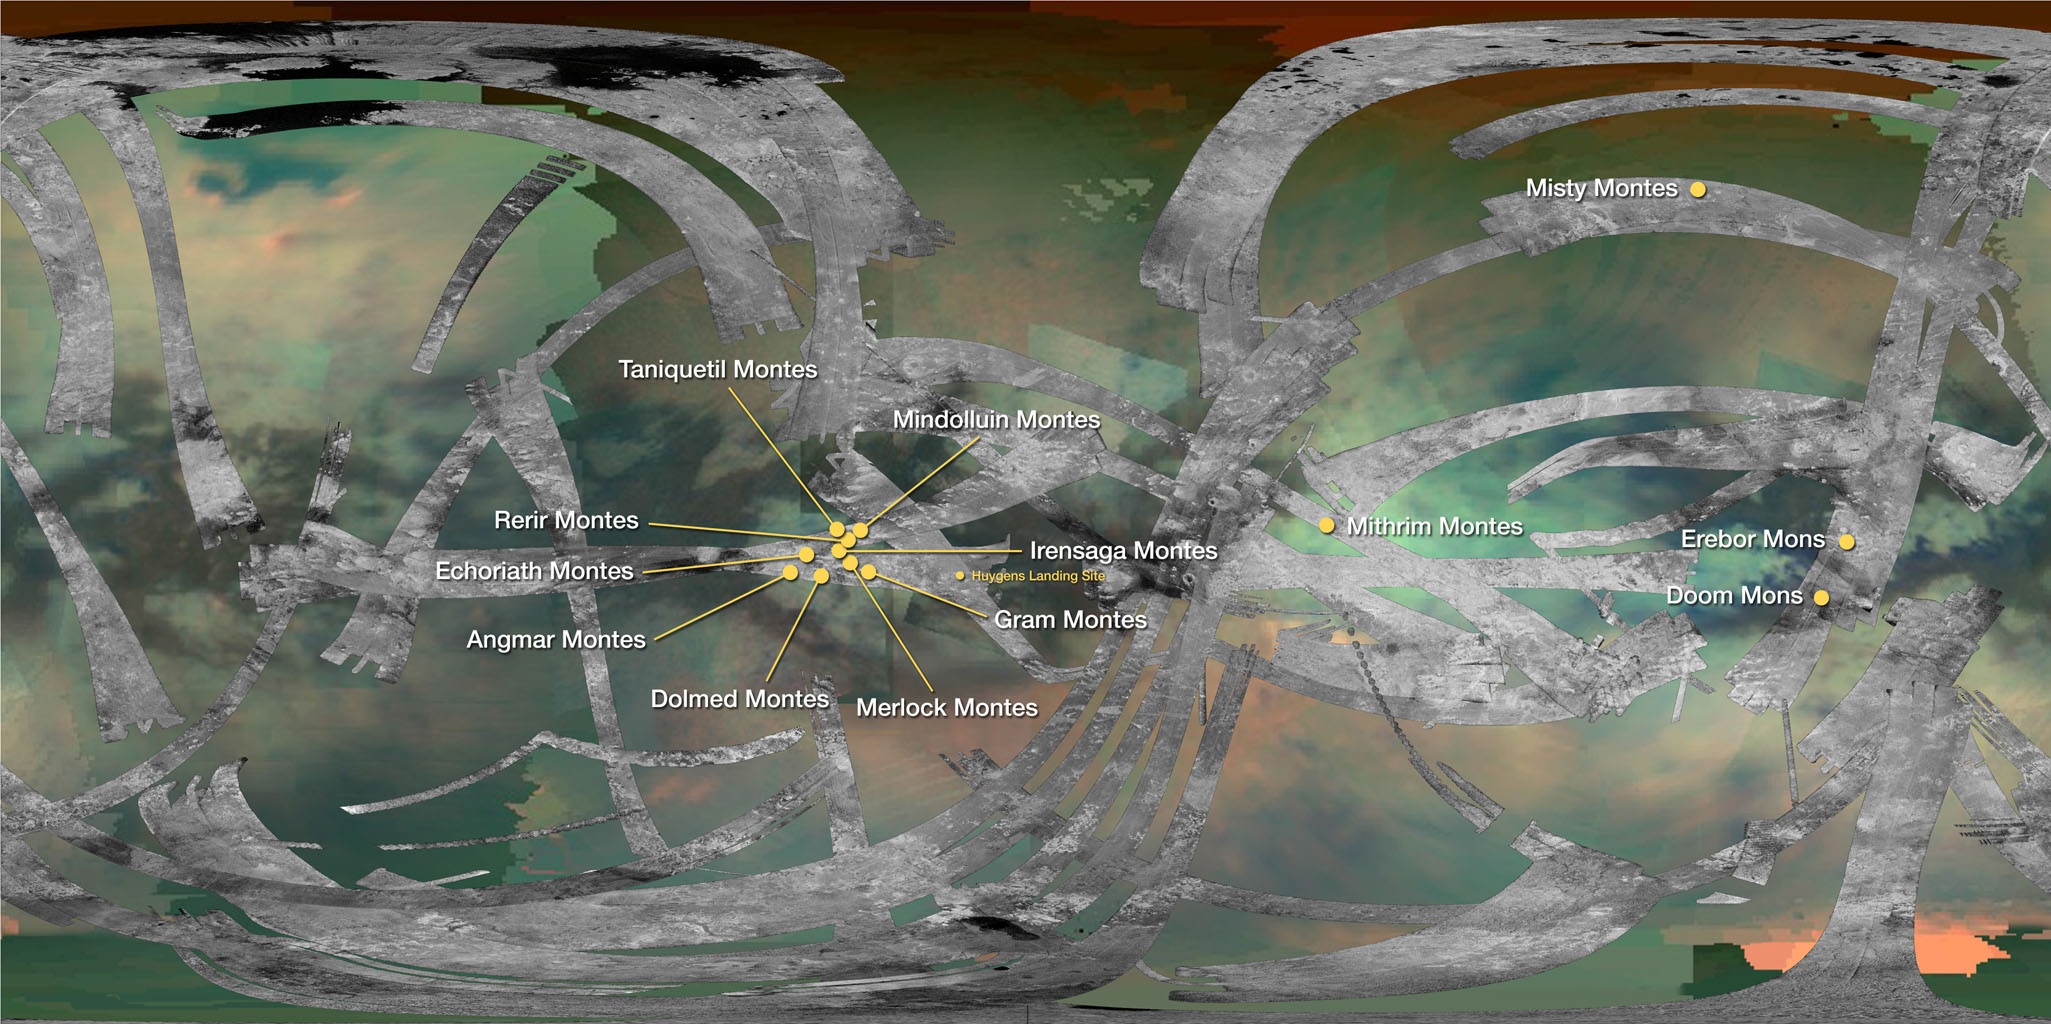 This map of Saturn's moon Titan identifies the locations of mountains named by the International Astronomical Union. By convention, mountains on Titan are named for mountains from Middle-earth, the fictional setting in fantasy novels by J.R.R. Tolkien.